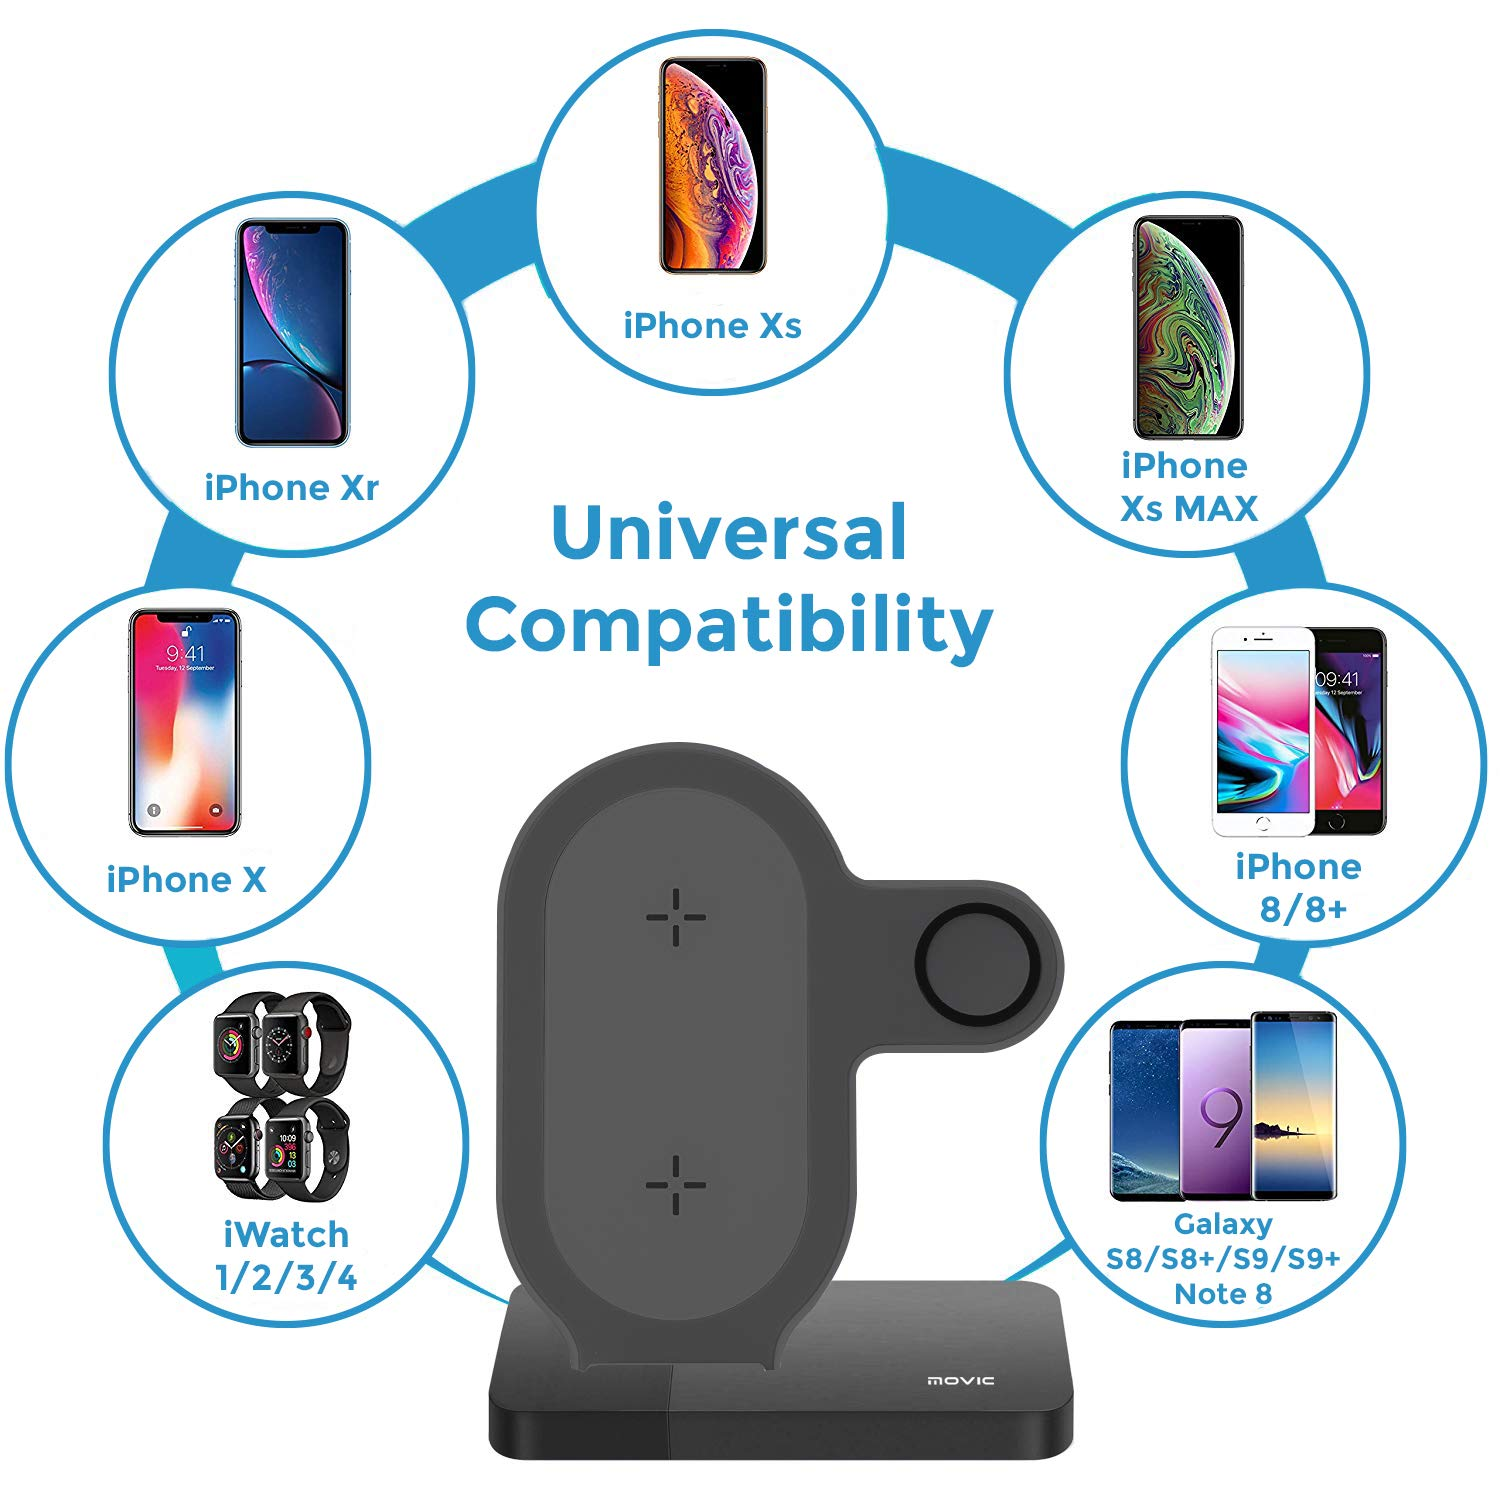 Movic 2 in 1 Qi Wireless Fast Charging Station (QC 3.0 Adaptor Included) Pad Dock for Apple Watch Series 1/2/3/4 iPhone 8/X/XS/XR, Samsung Galaxy and All Qi Enabled Devices MFi-Certified - (Black)